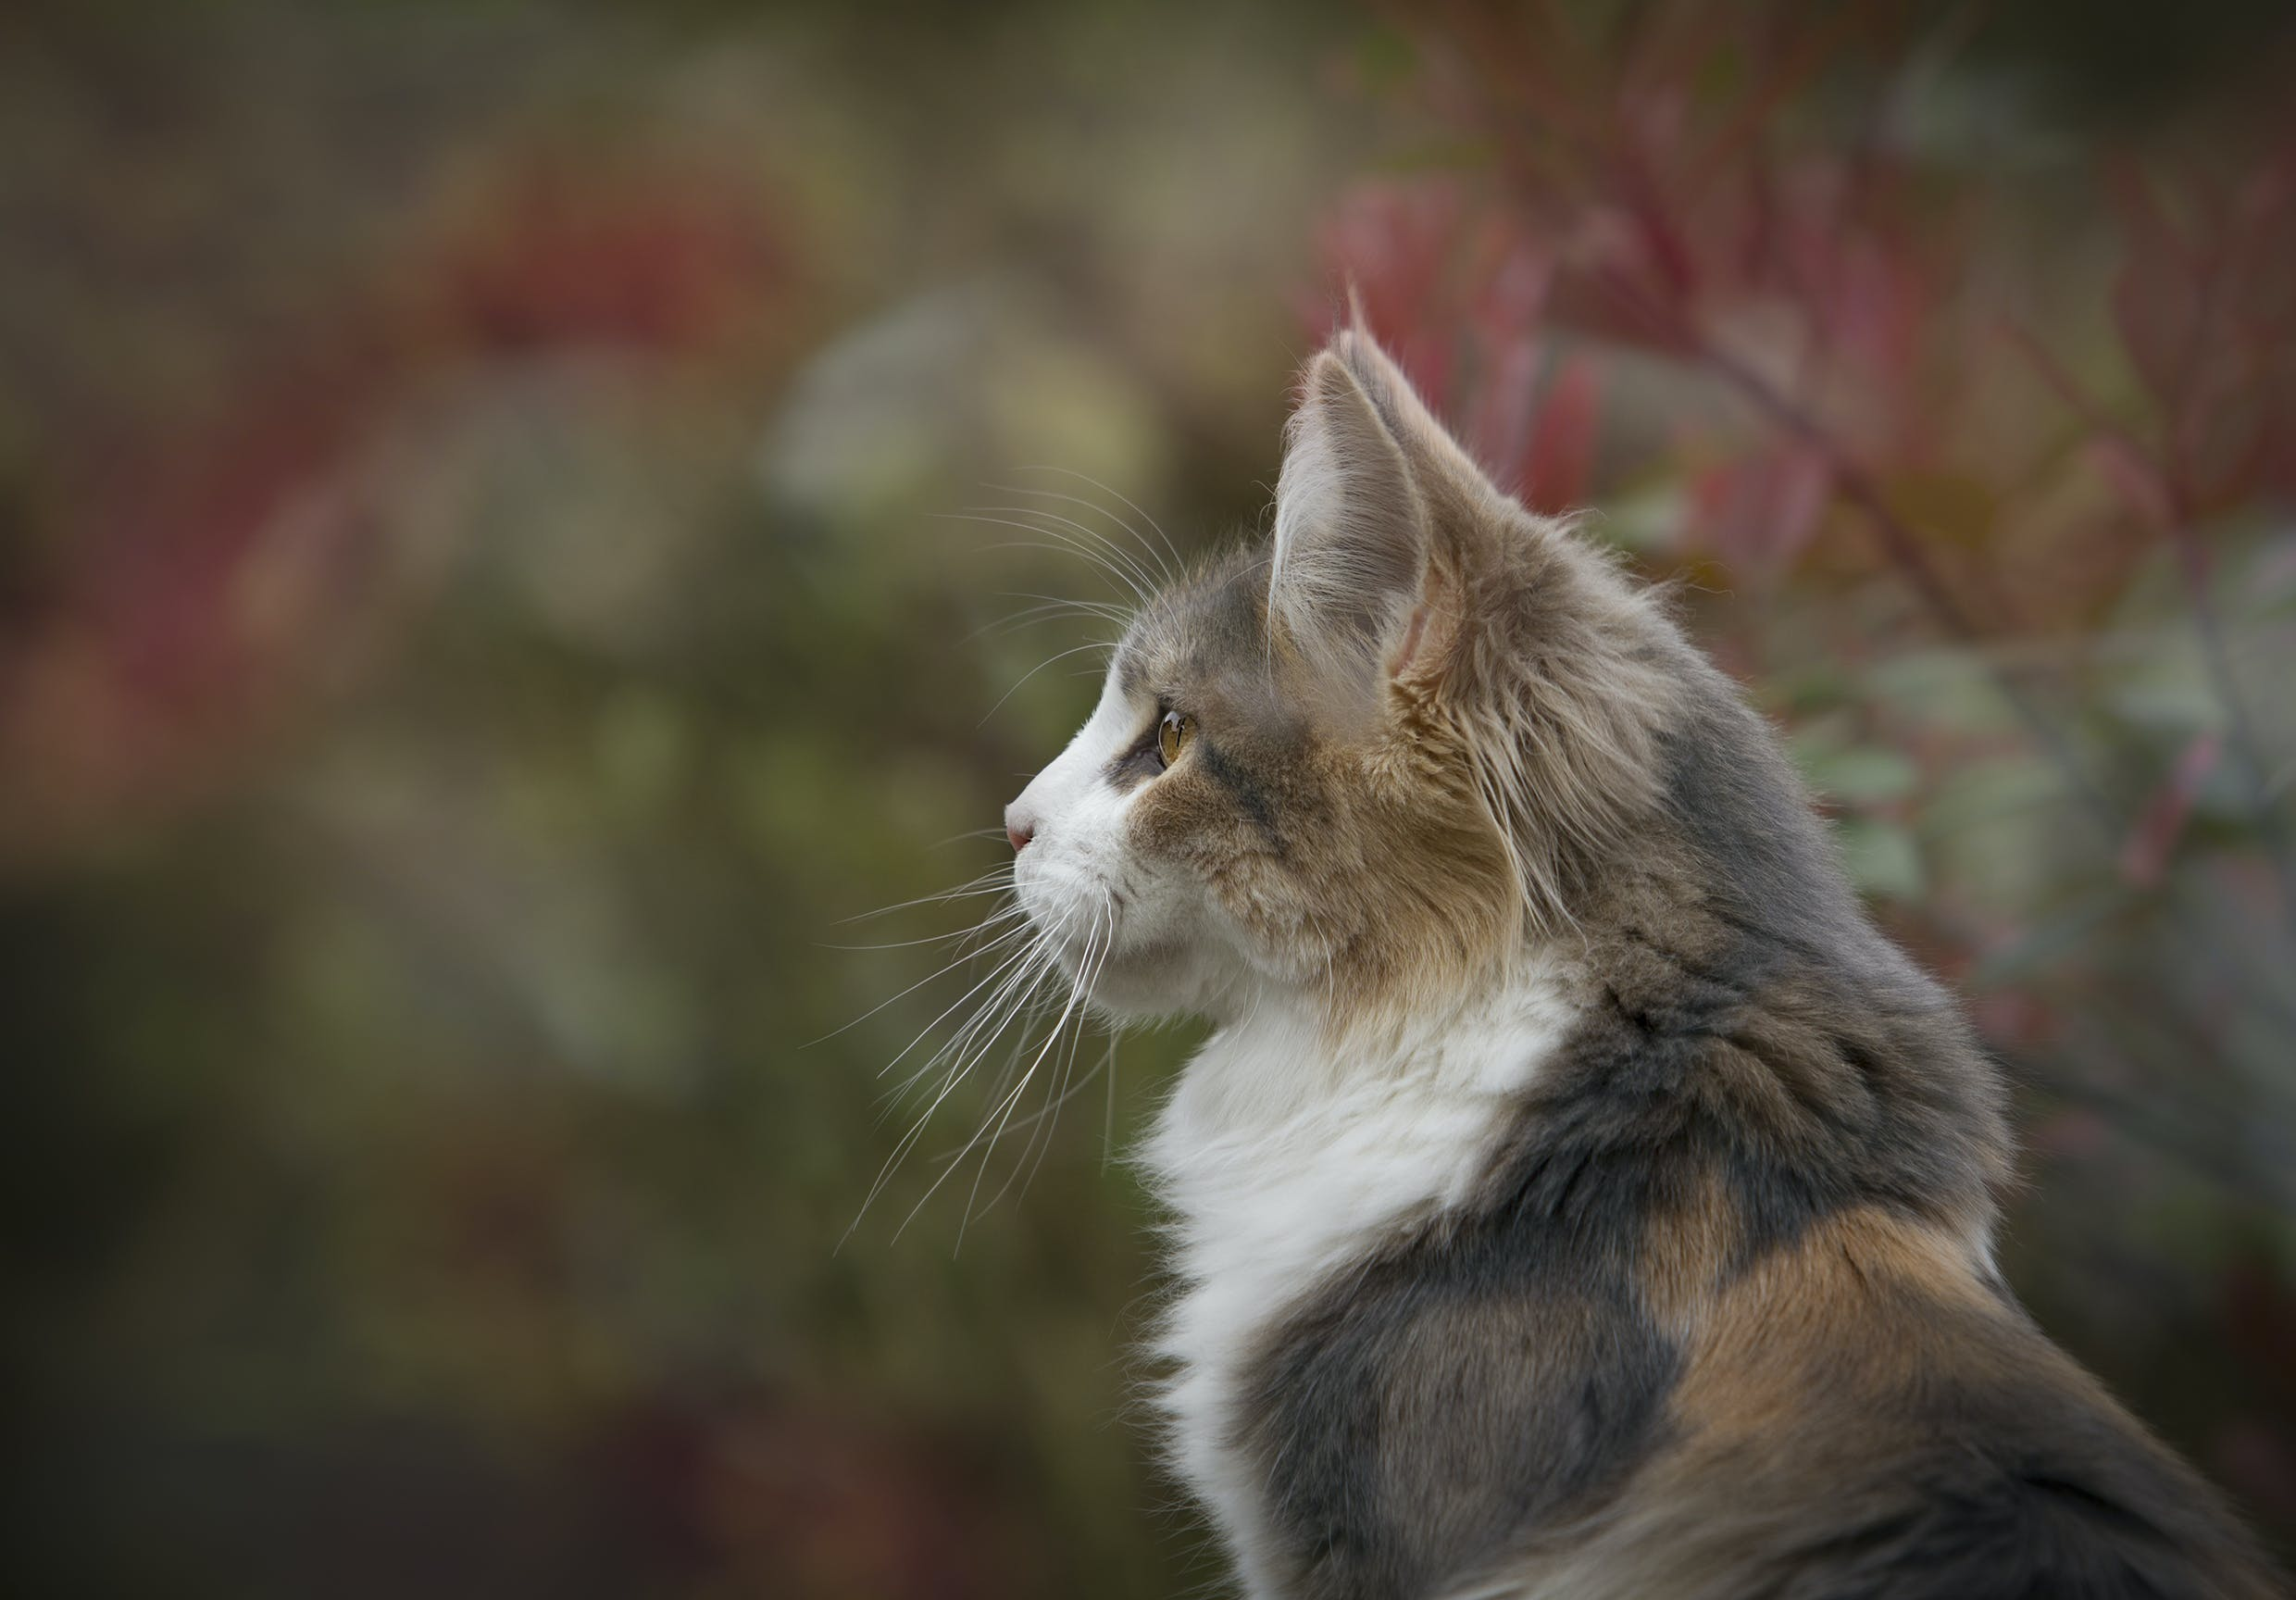 Close Up Photo of White and Brown Feline